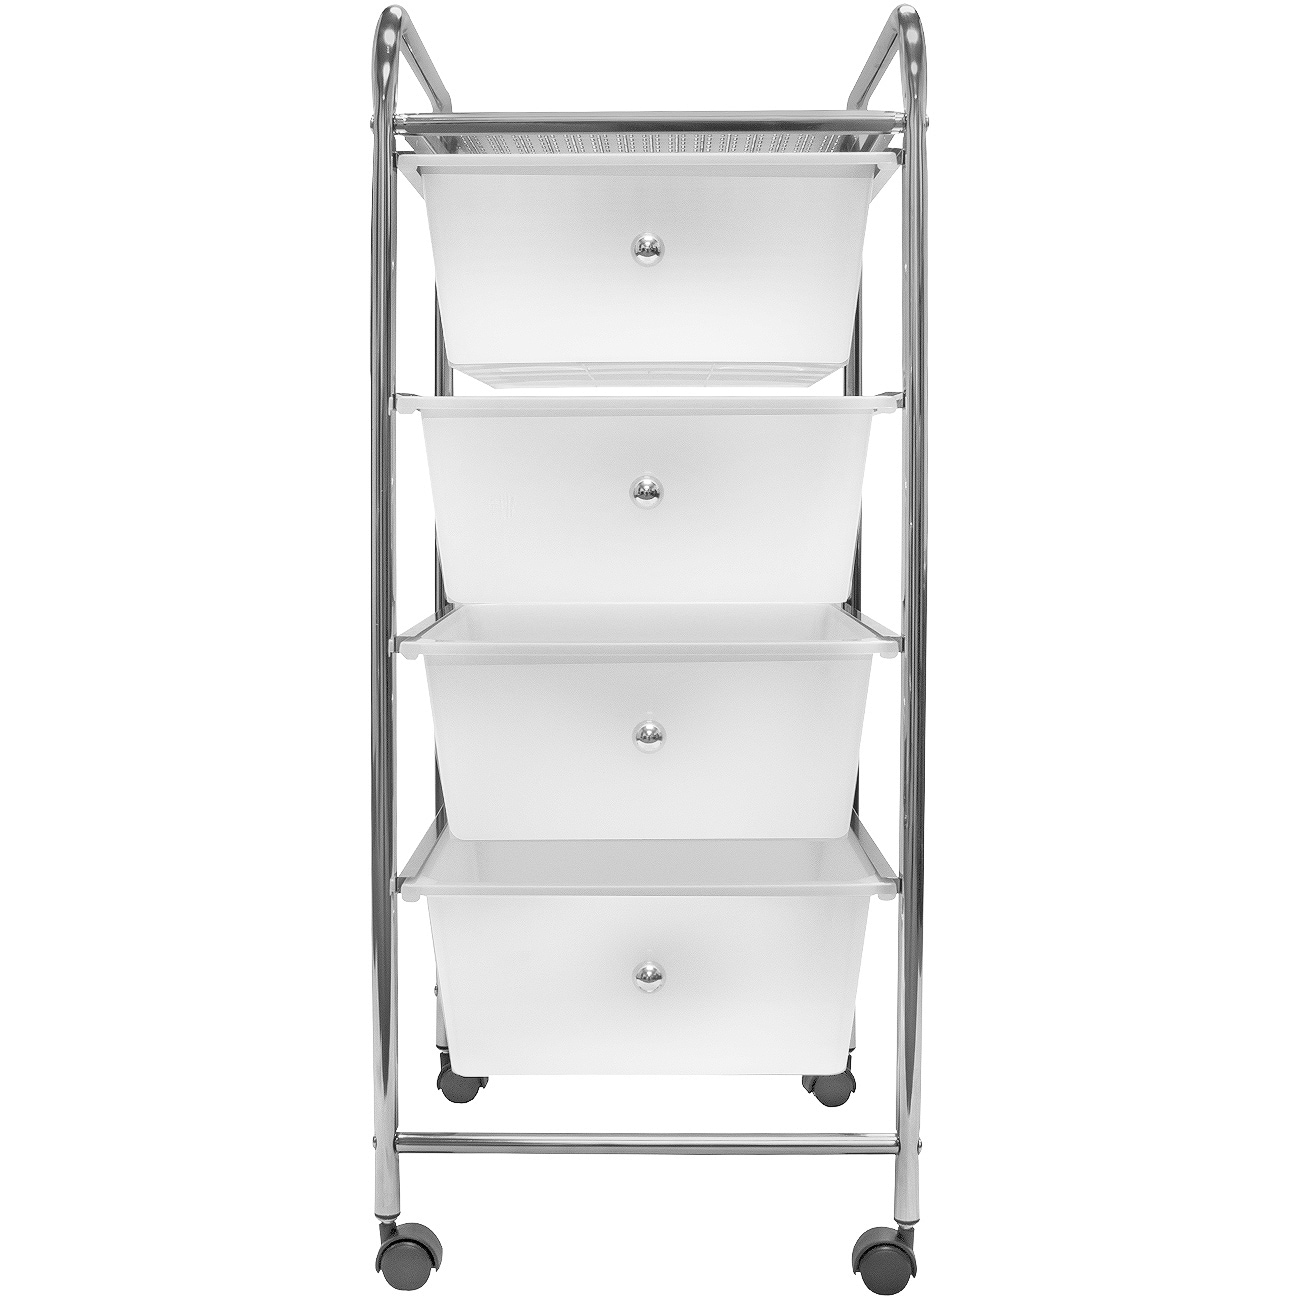 office rolling cart. Sorbus 4 Drawer Organizer Rolling Cart, Great For Office Or Home - White Free Shipping Today Overstock 19634392 Cart